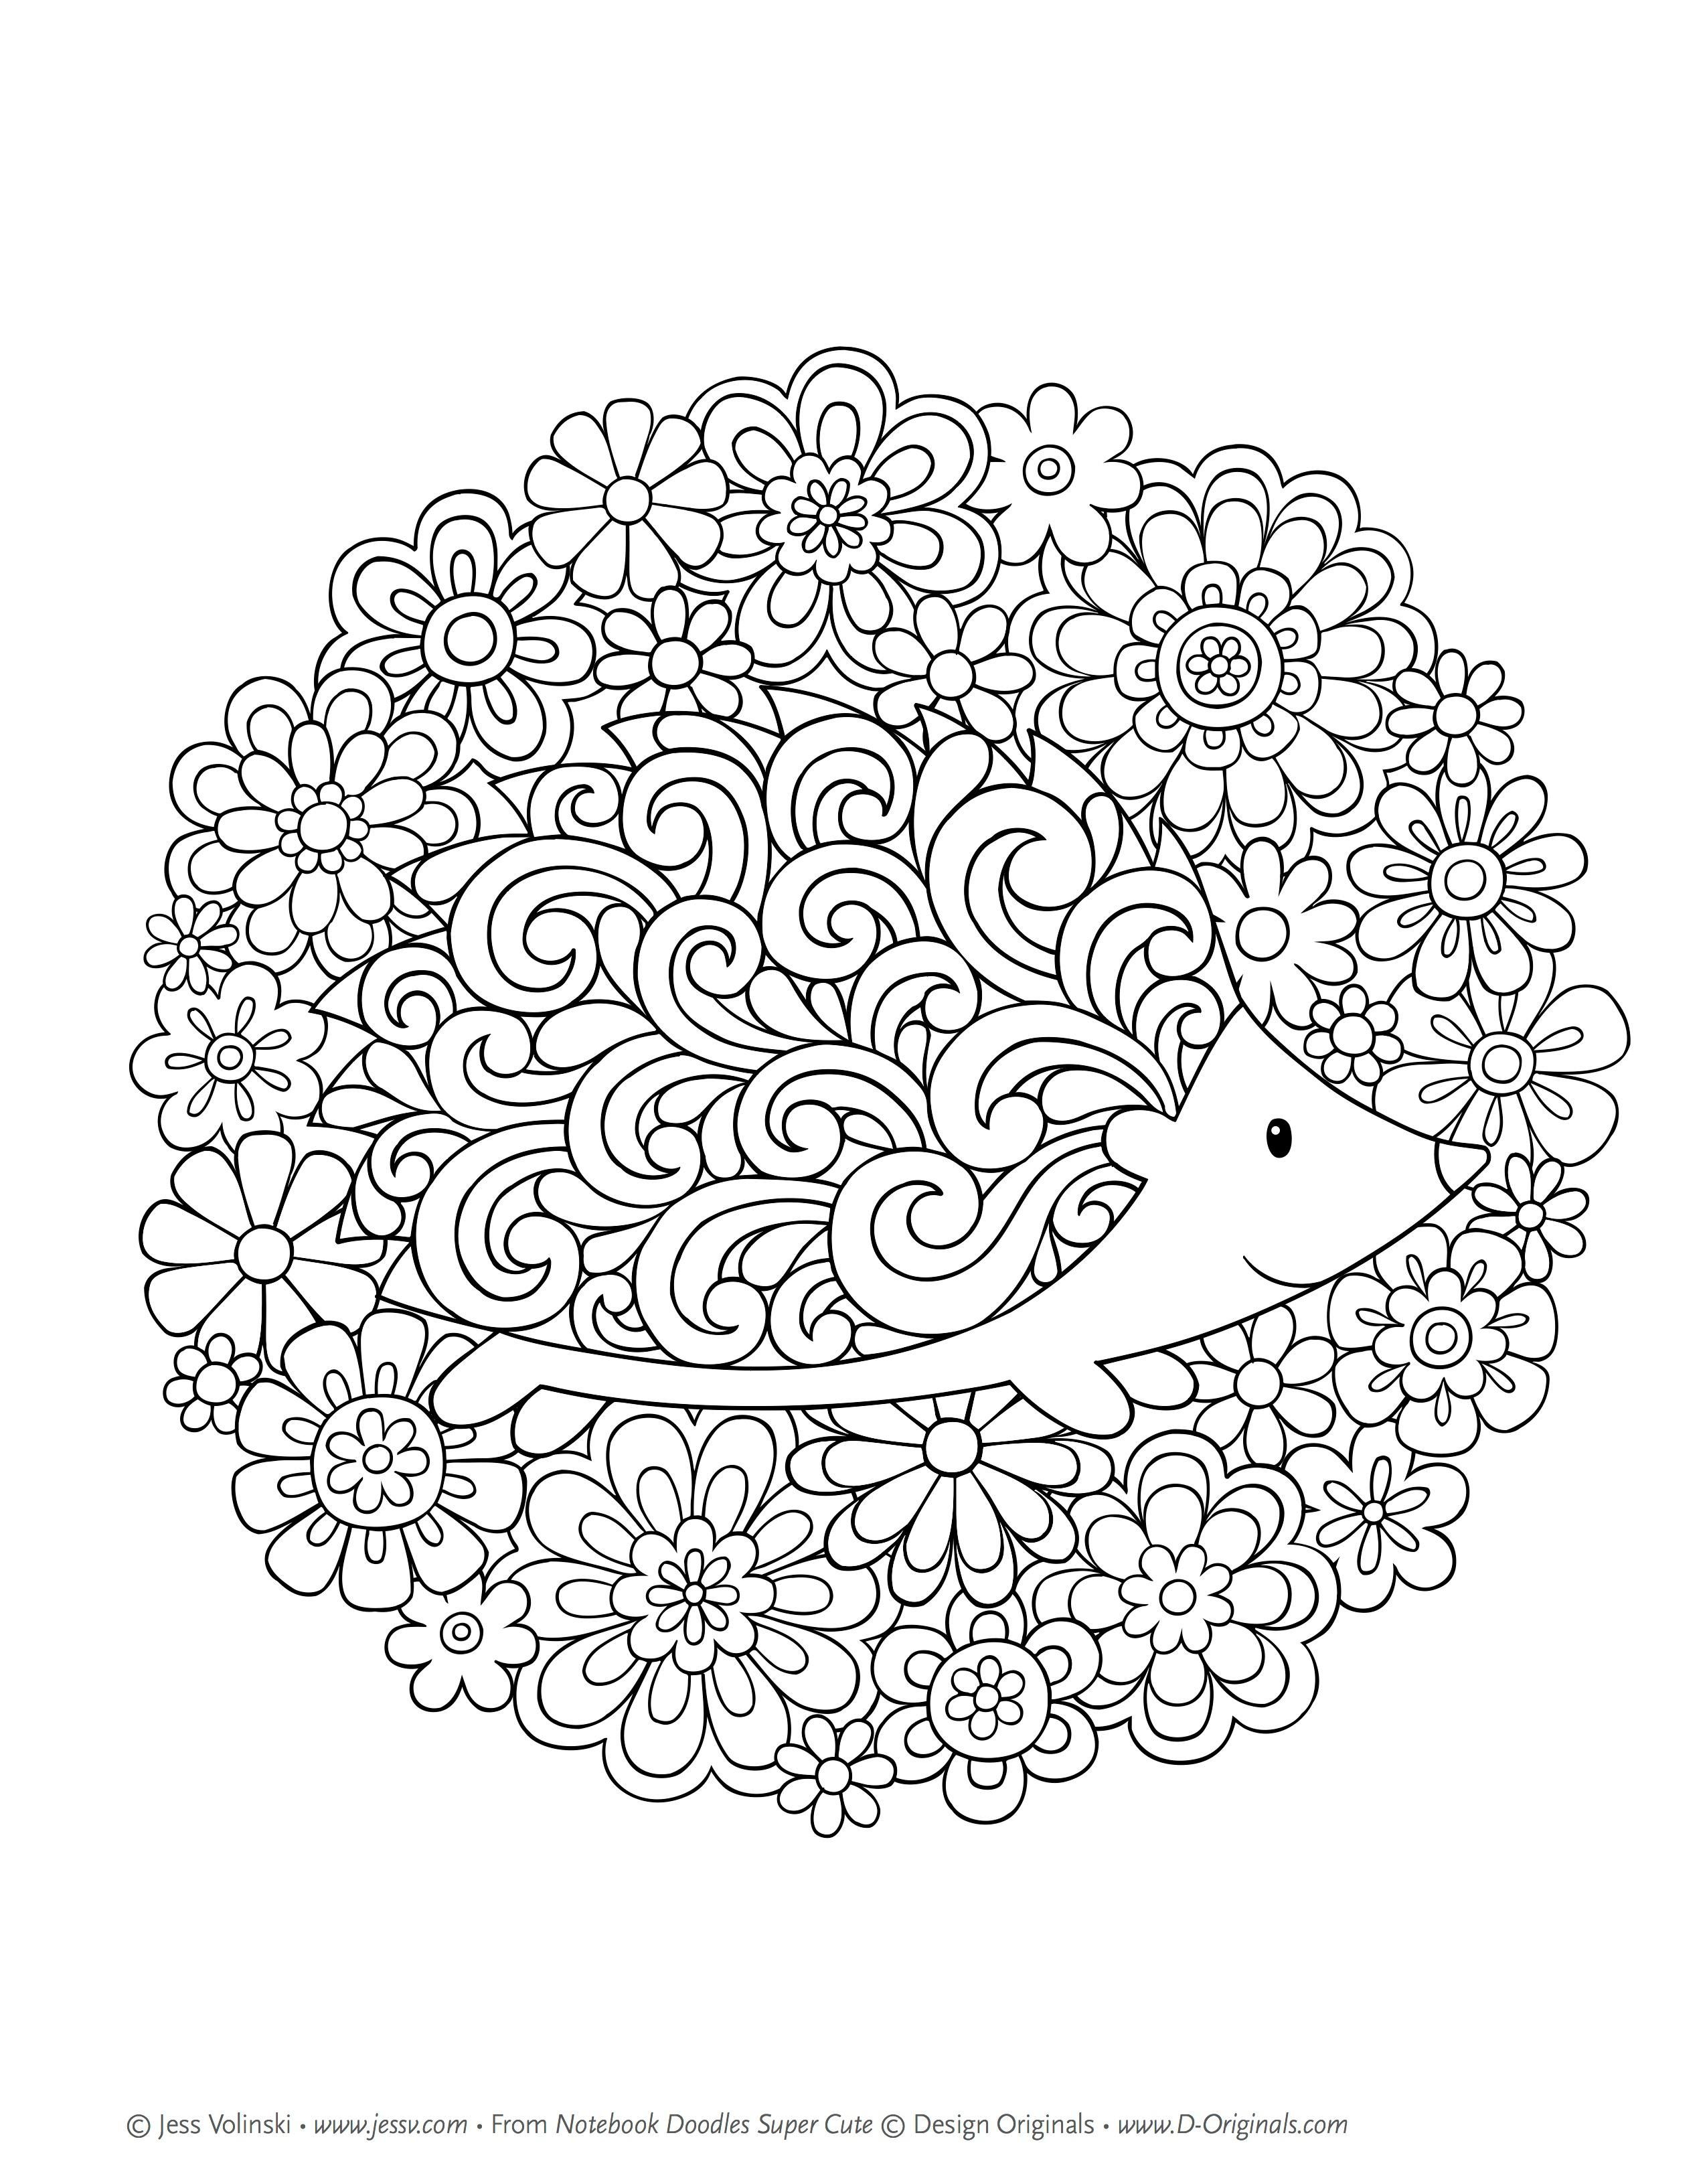 Amazon Com Notebook Doodles Super Cute Coloring Amp Activity Book 9781497201392 Jess Volinski Mandala Coloring Pages Cute Coloring Pages Coloring Pages